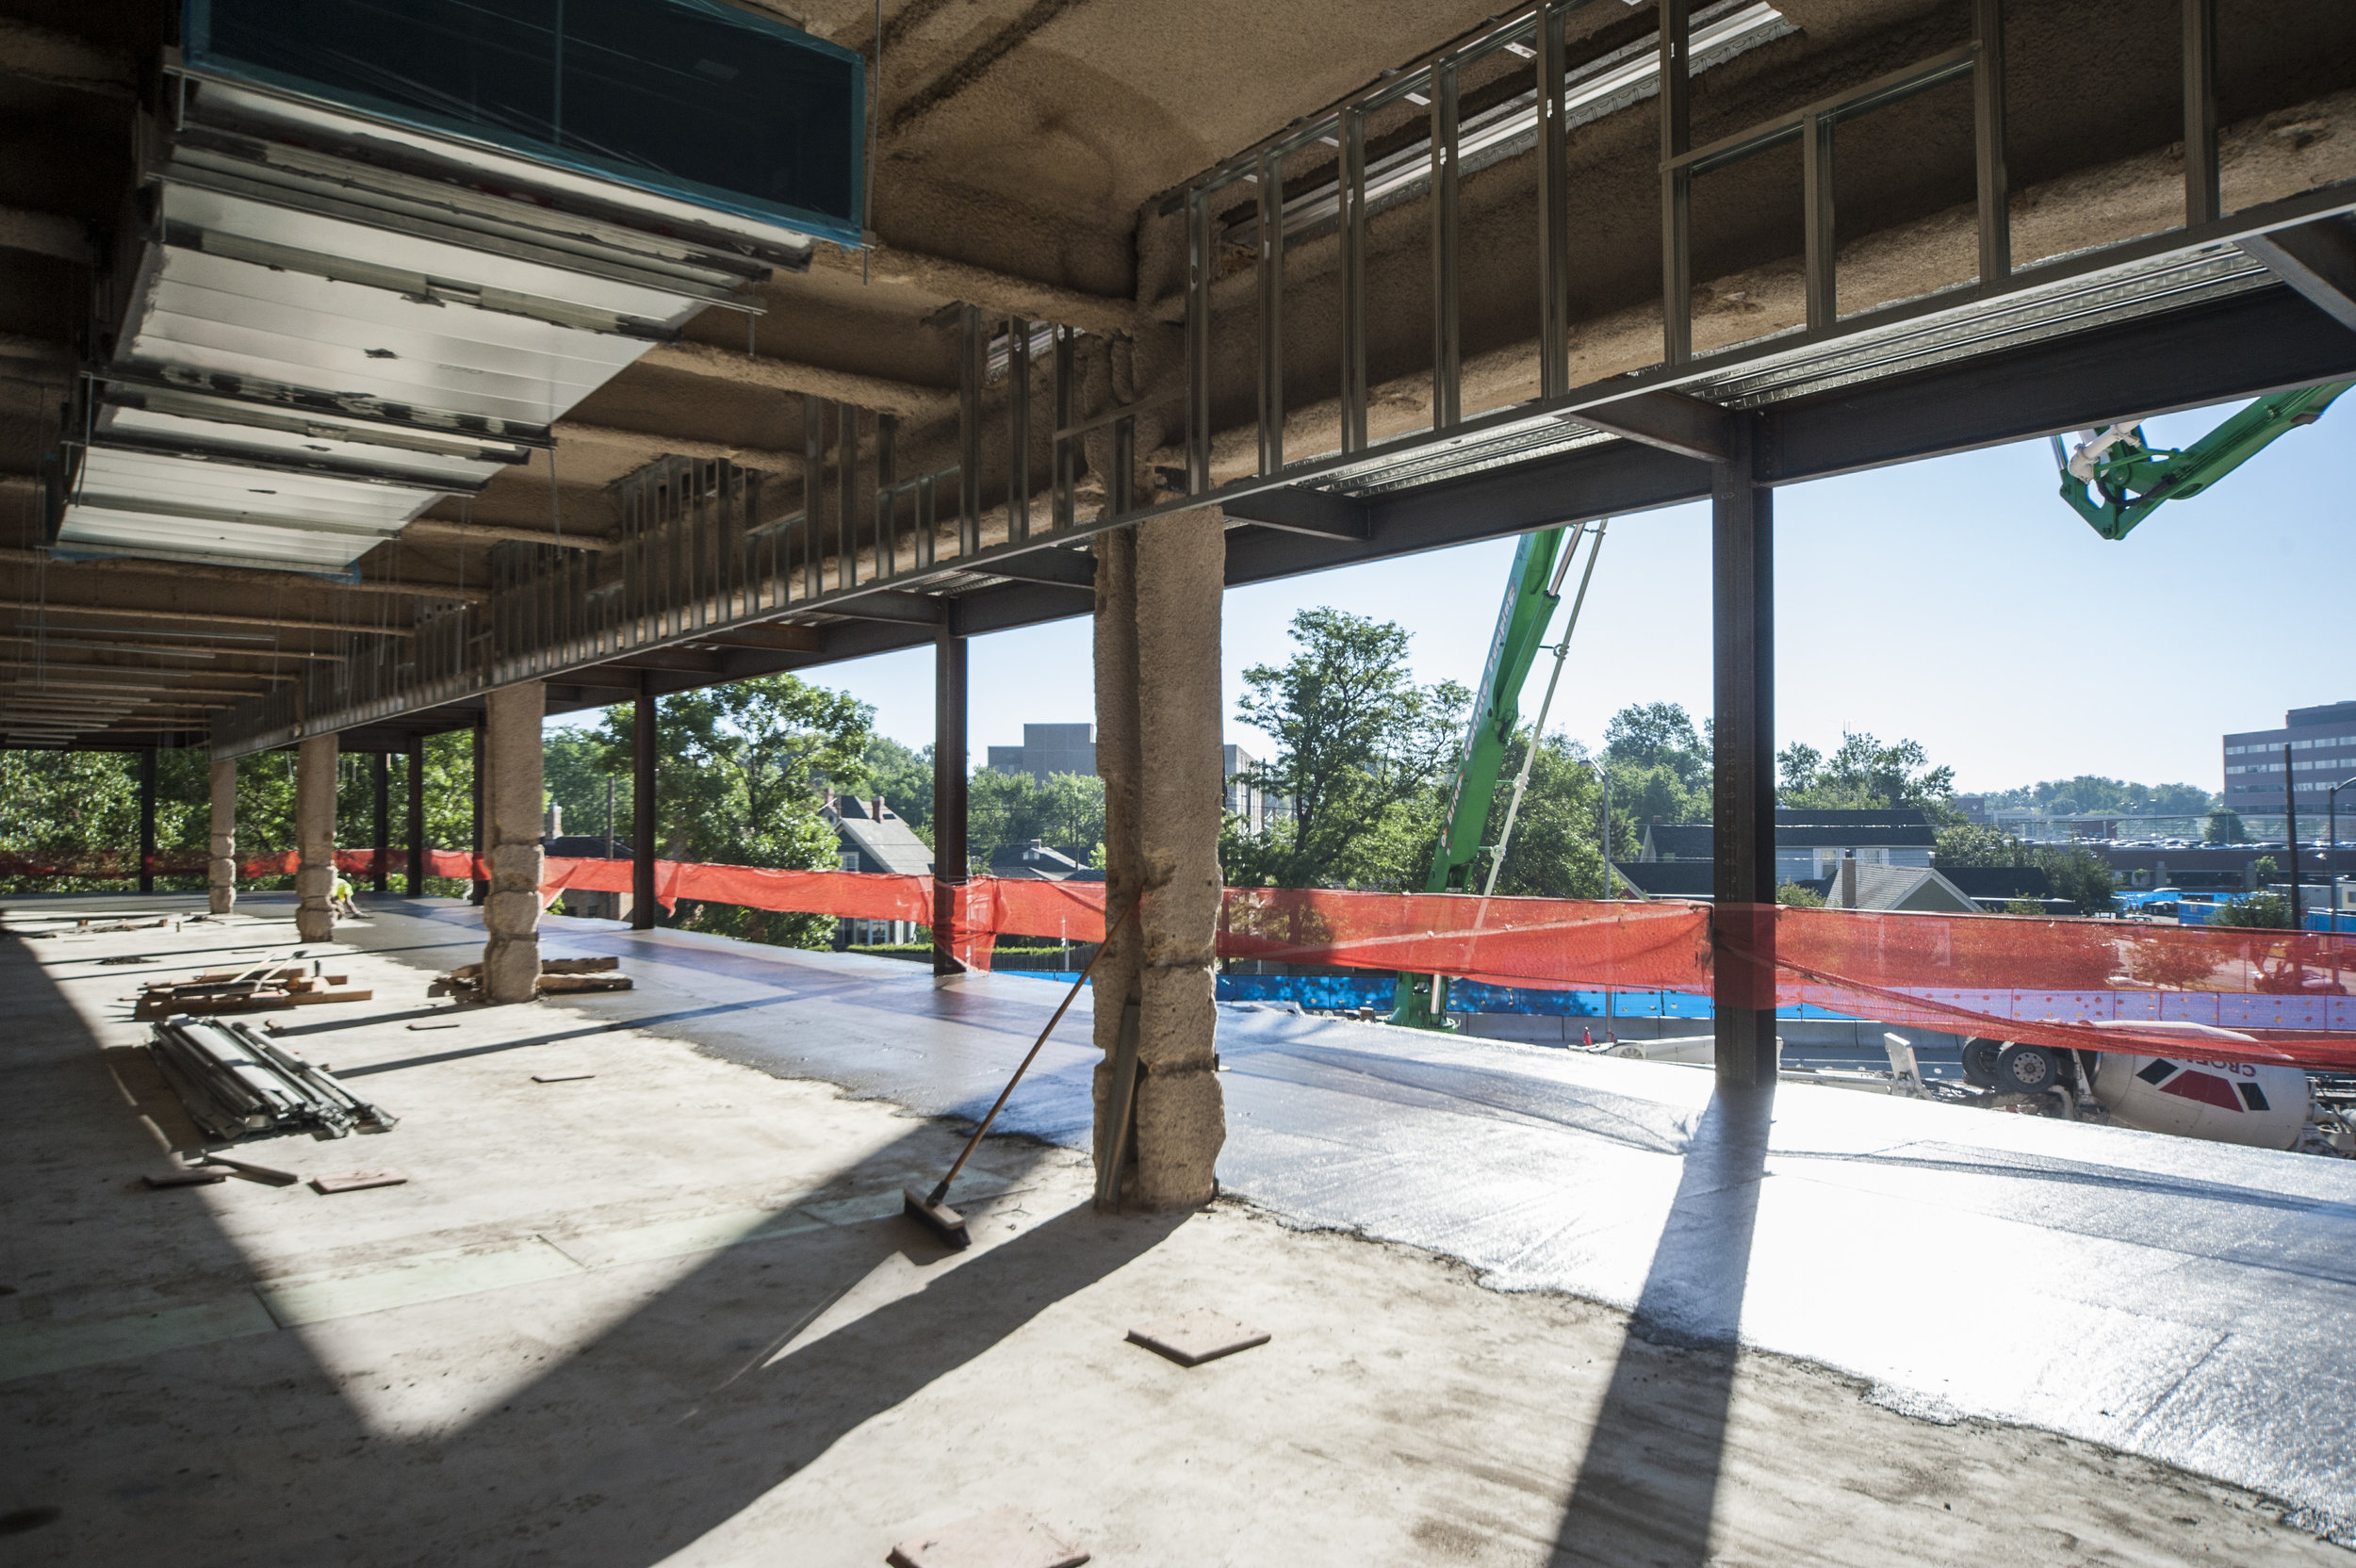 The concrete pour is finished on the second floor. Notice the new ductwork and steel framing that has been installed in the older section of the Herschler Building.